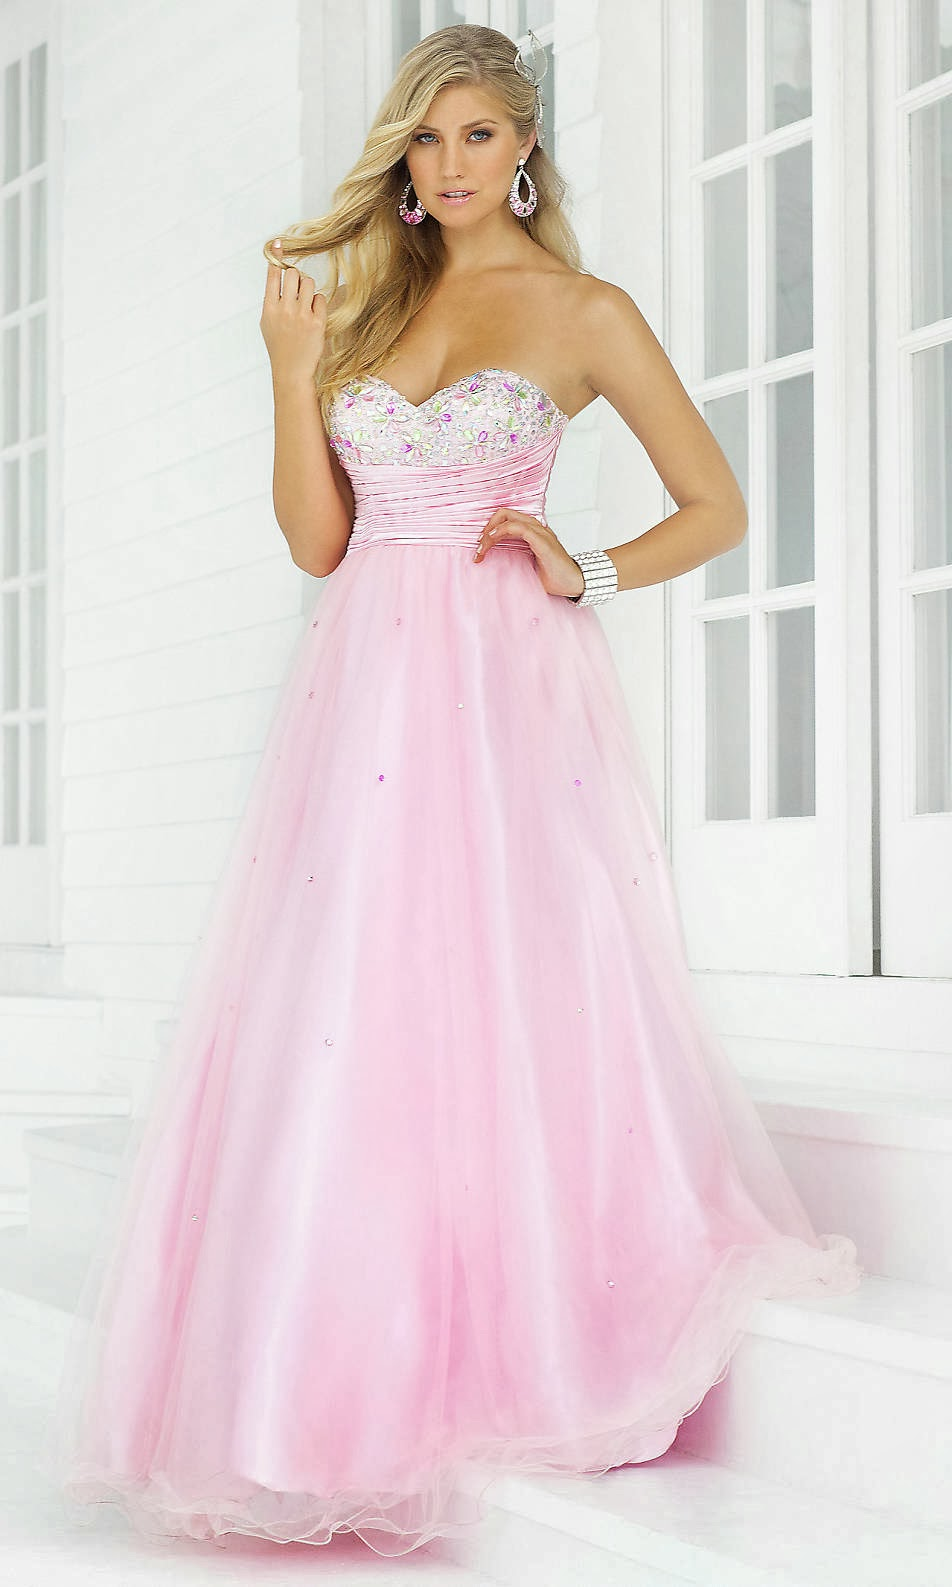 Pink Prom Dresses 2013 Top #3 Pink Pro...